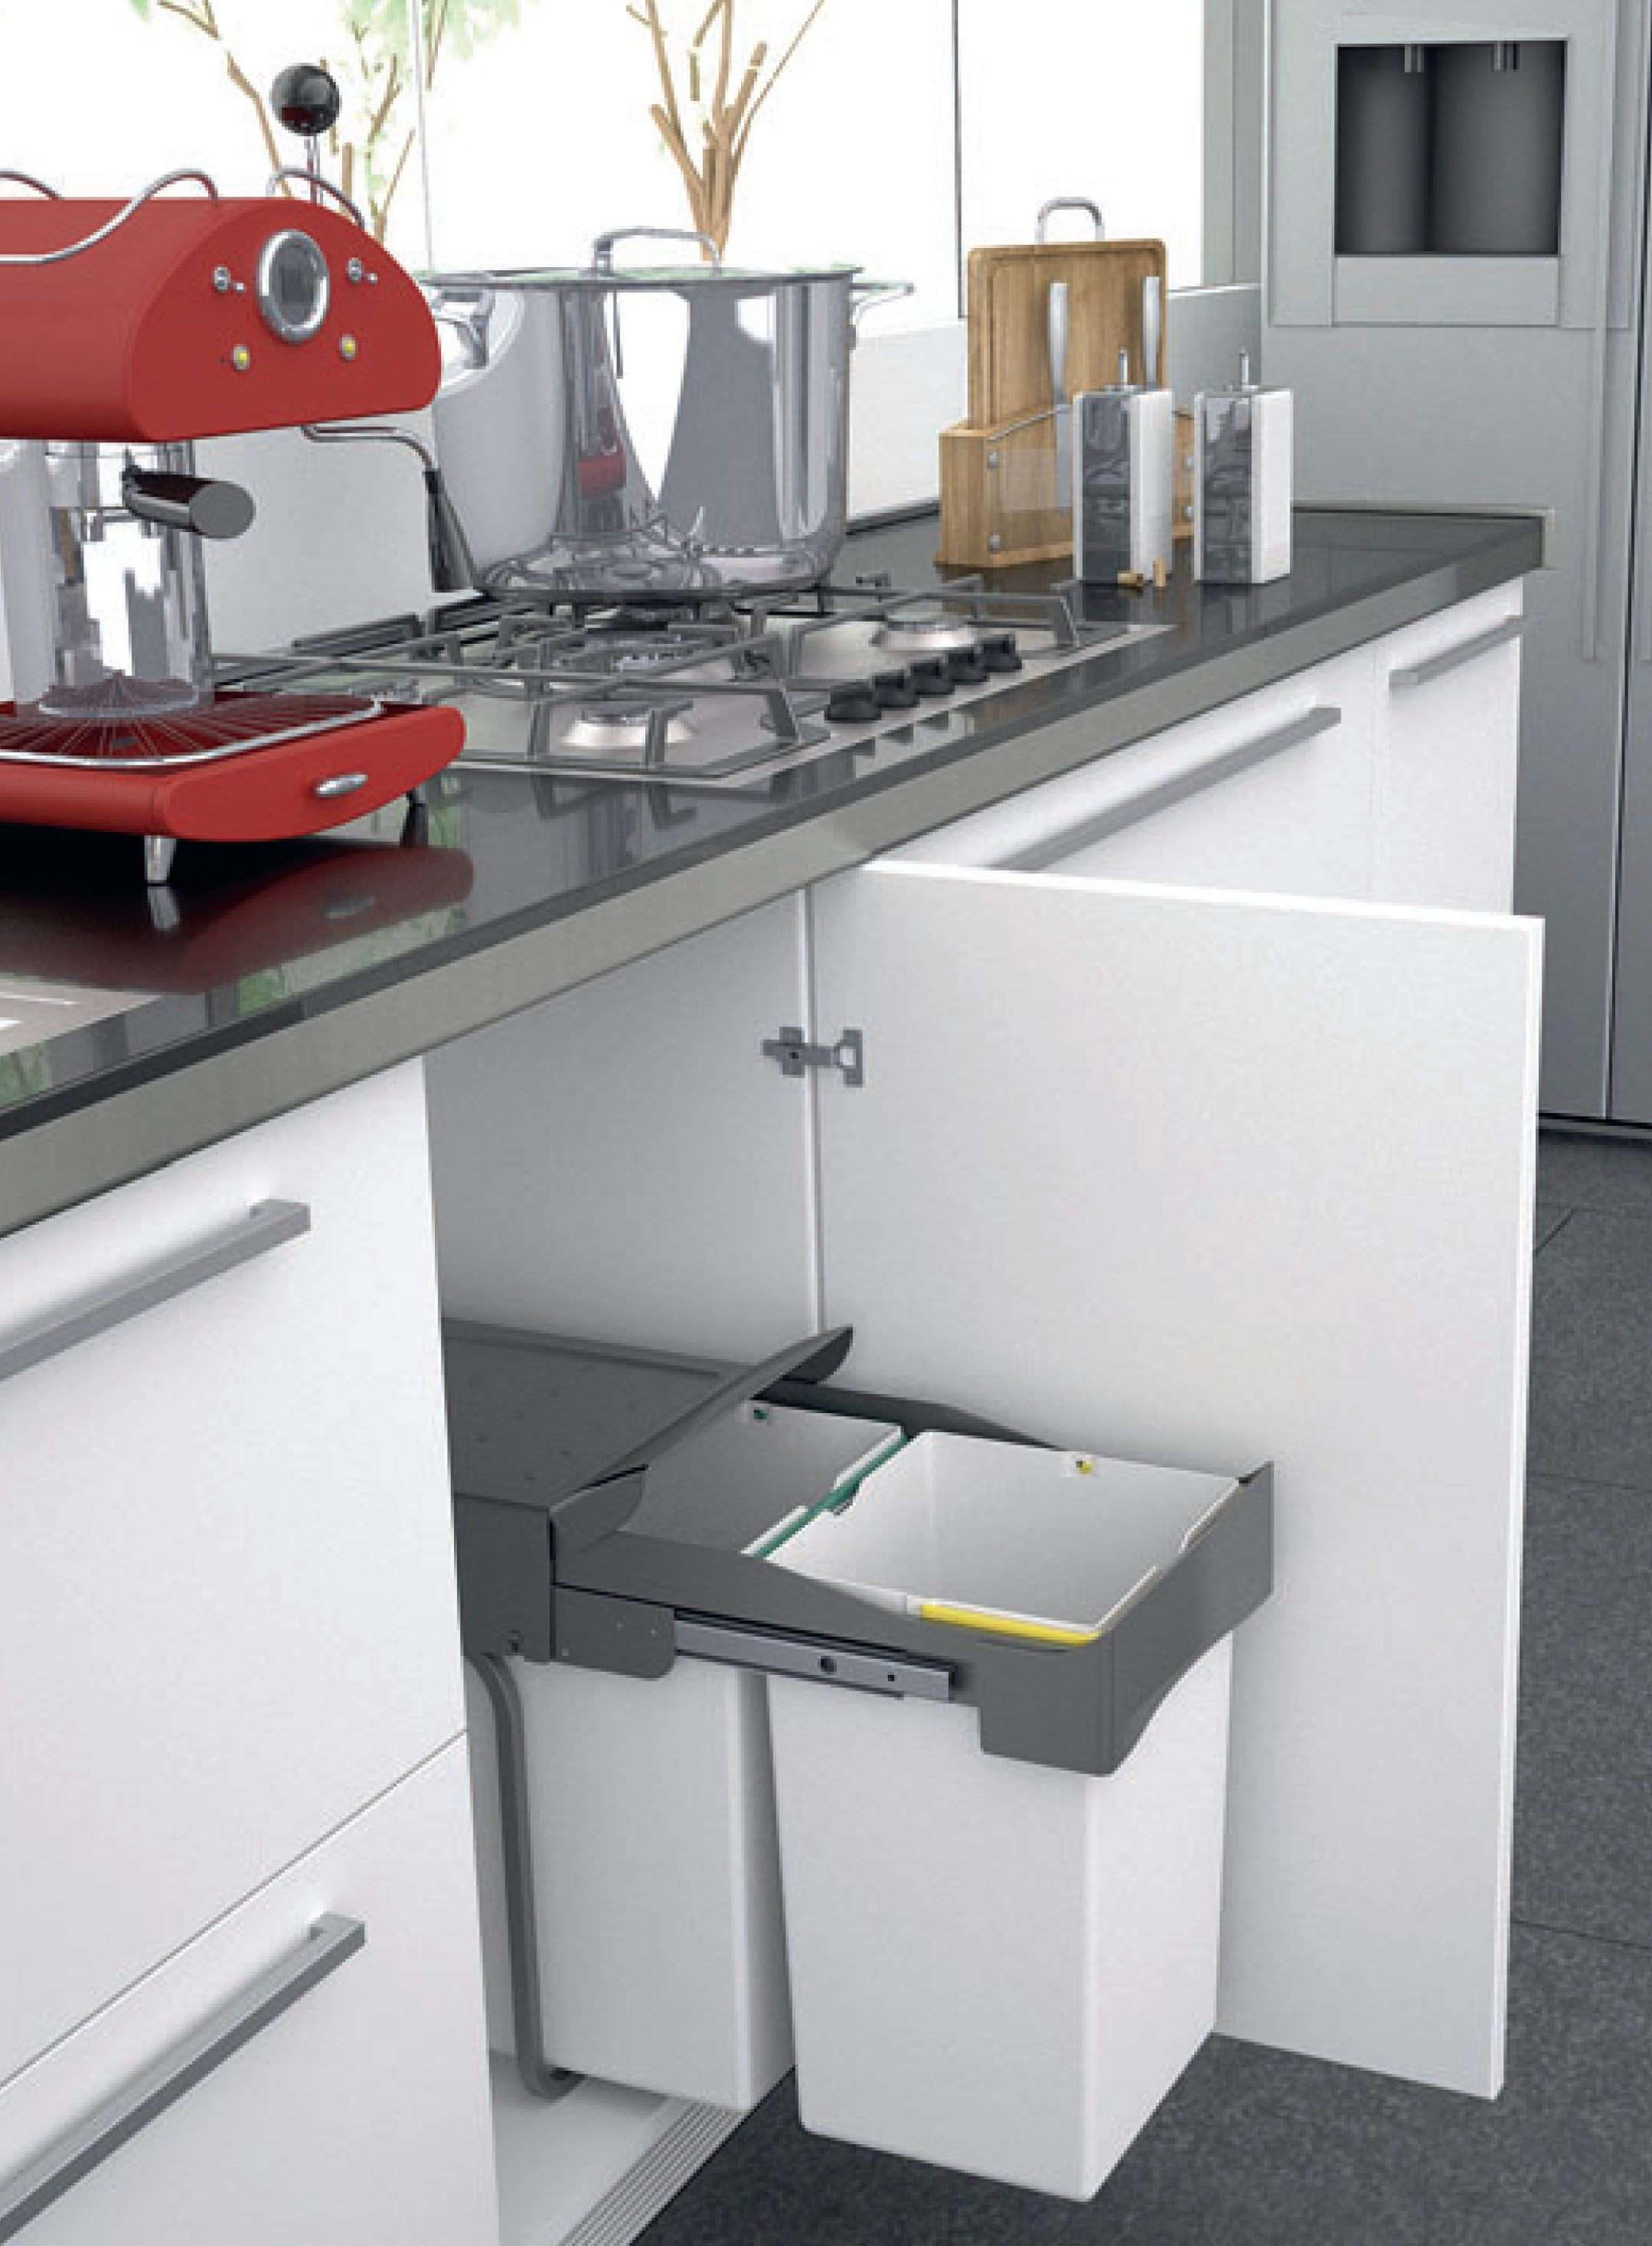 I520 Series Undersink Waste Bin SoftClose Pull Out System